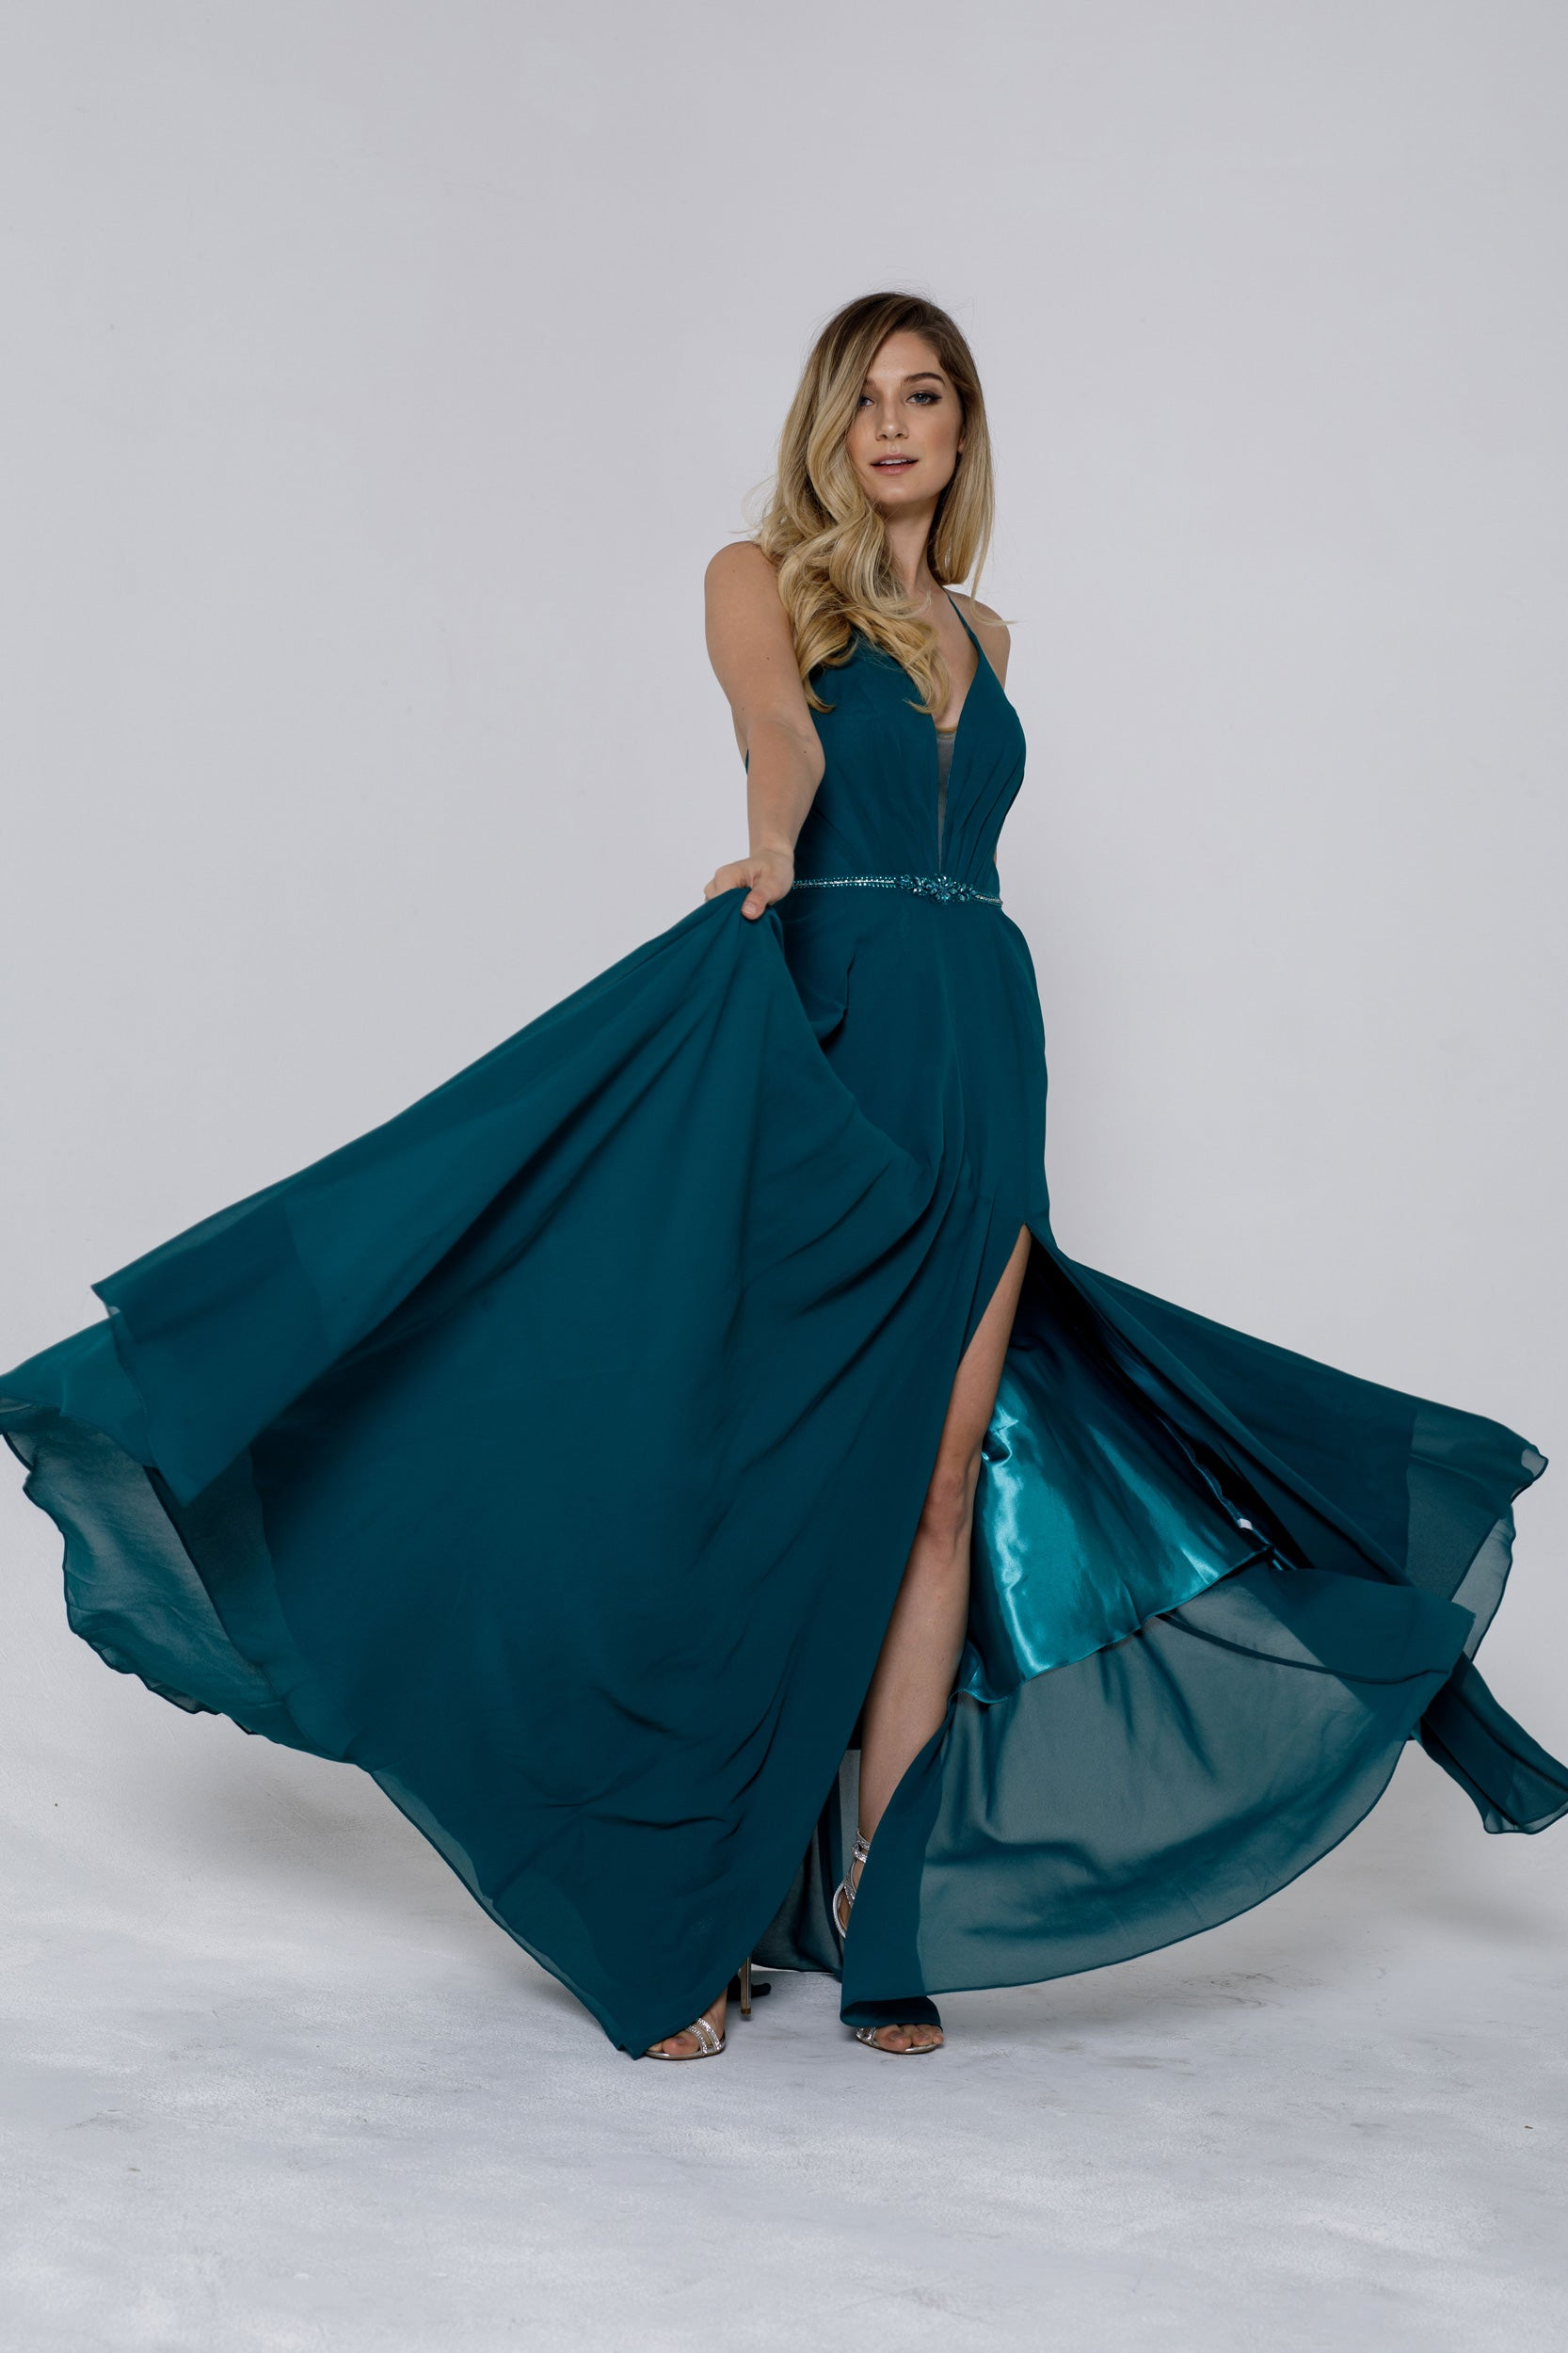 Image of V-neck Rhinestones Belt Front Slit Longl Bridesmaid Dress in Emerald Green